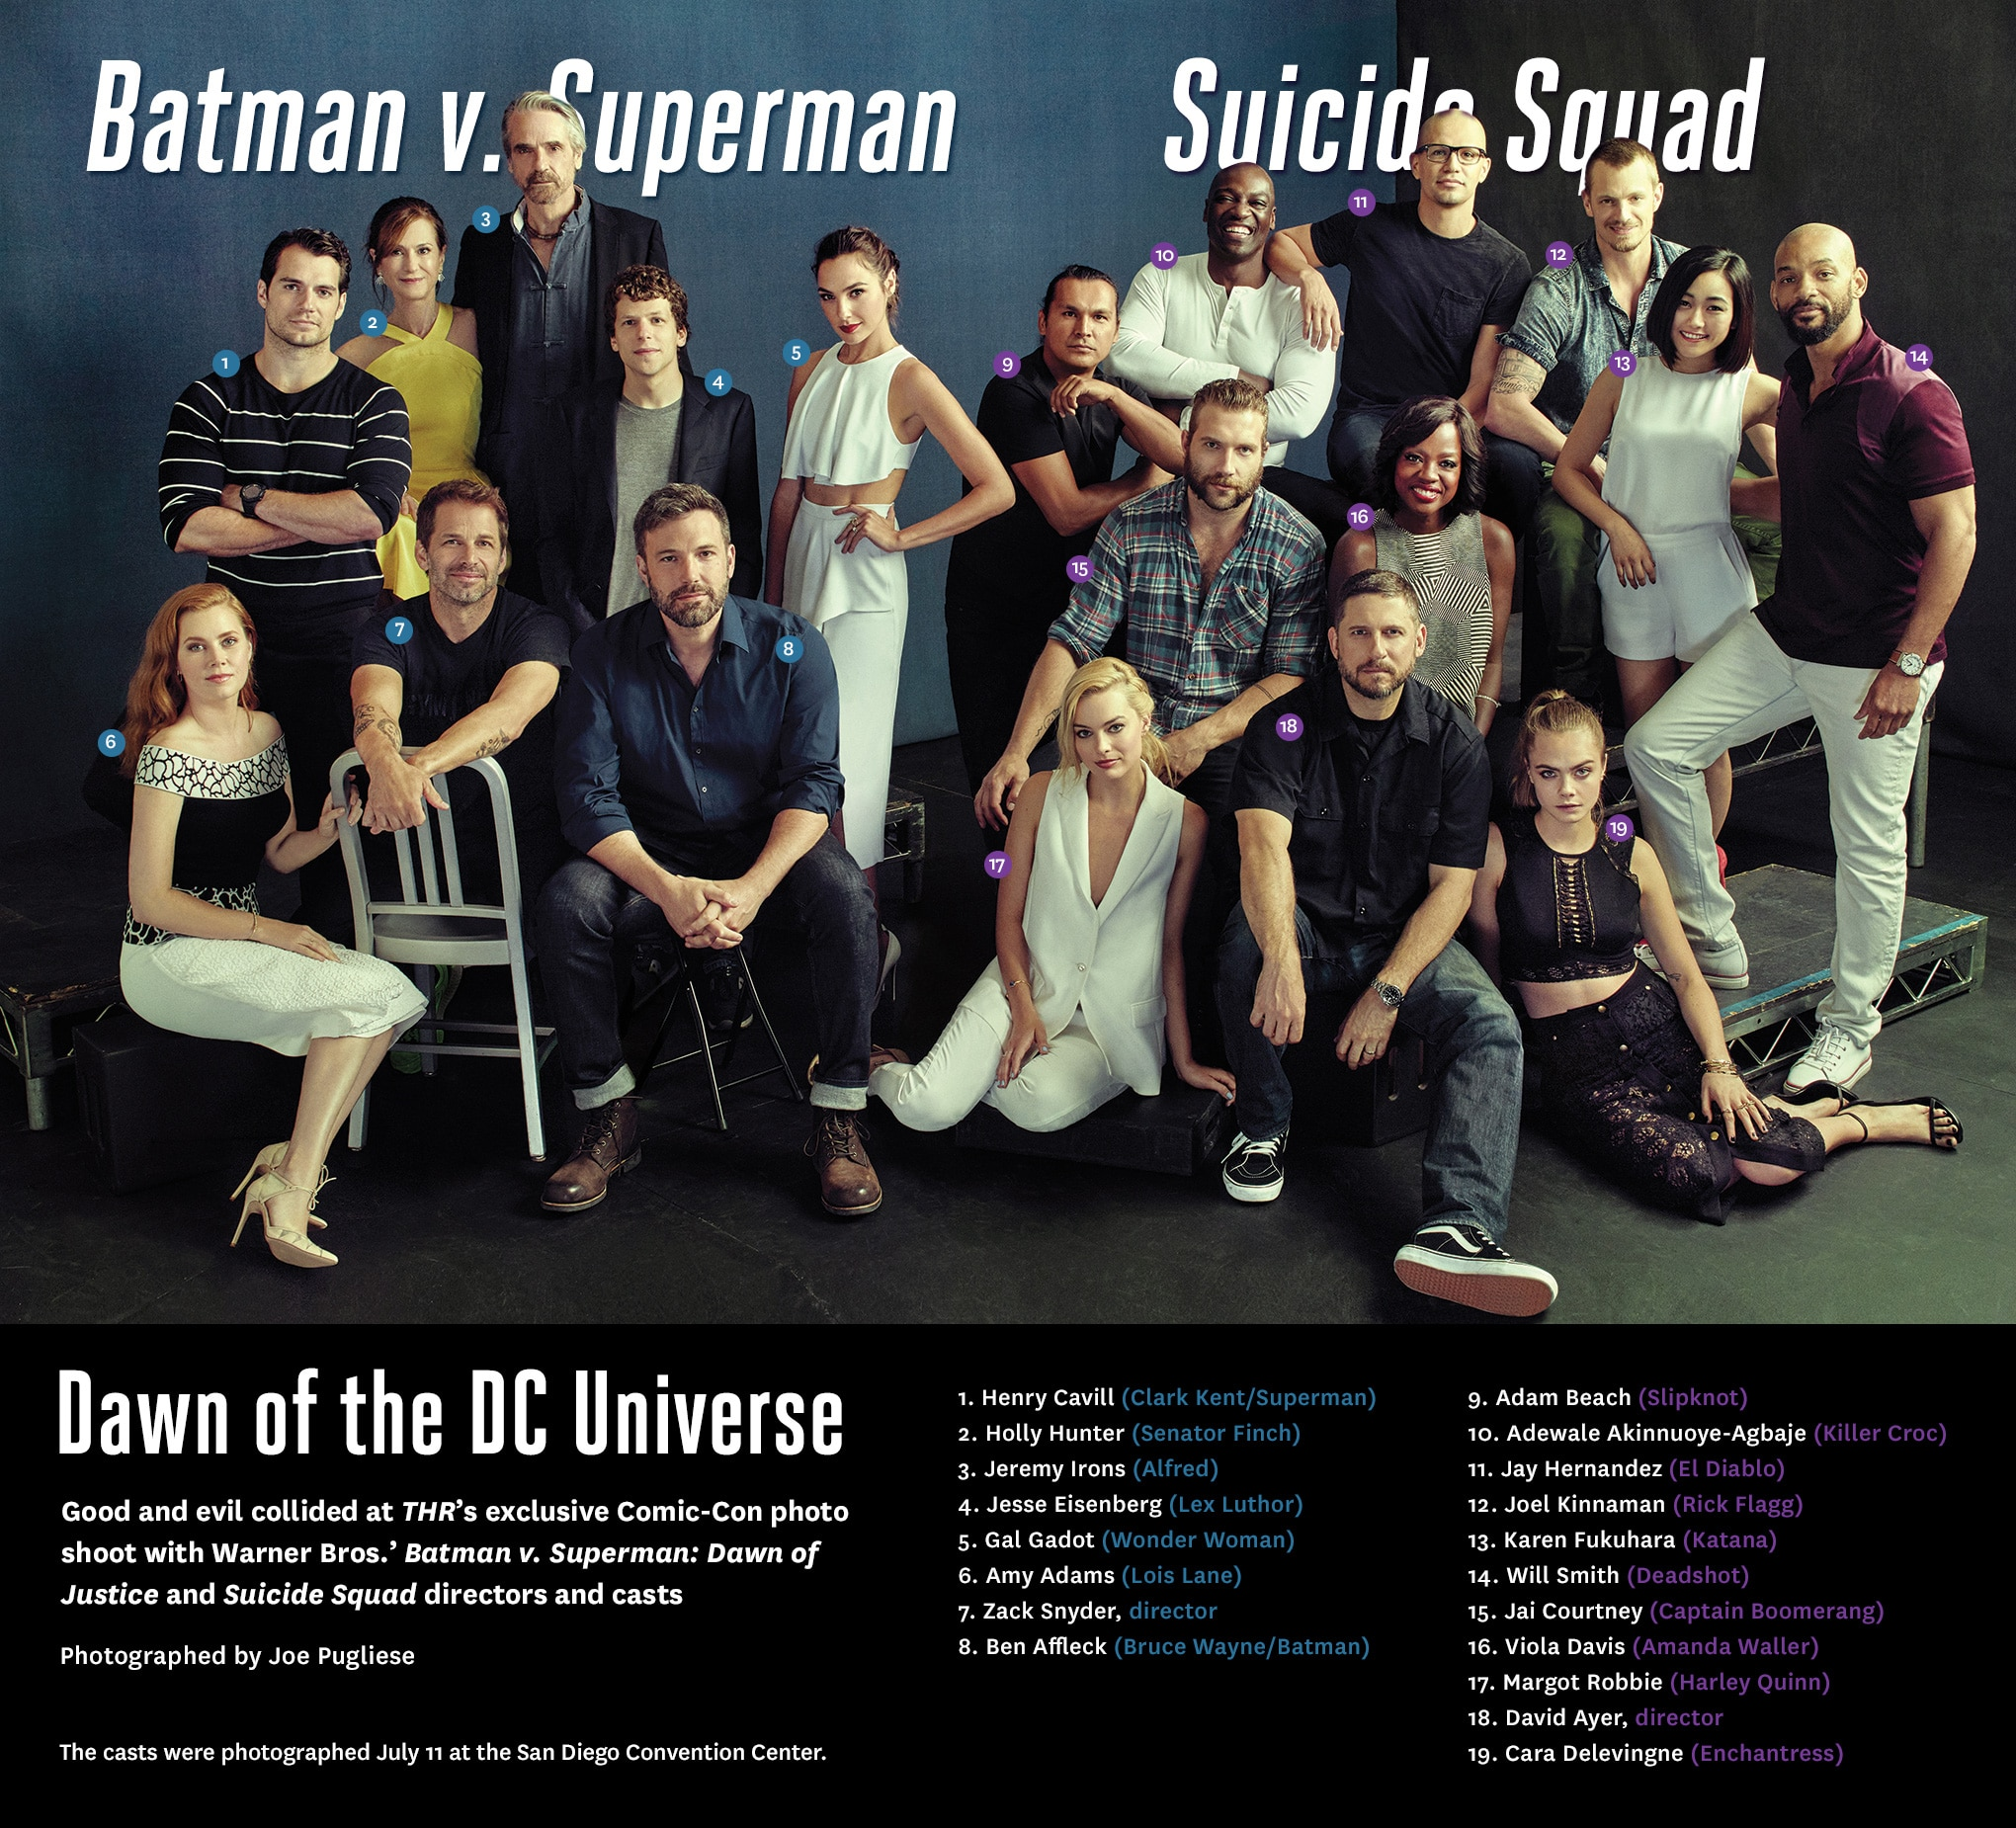 The-Hollywood-Reporter-Batman-V-Superman-Suicide-Squad-01